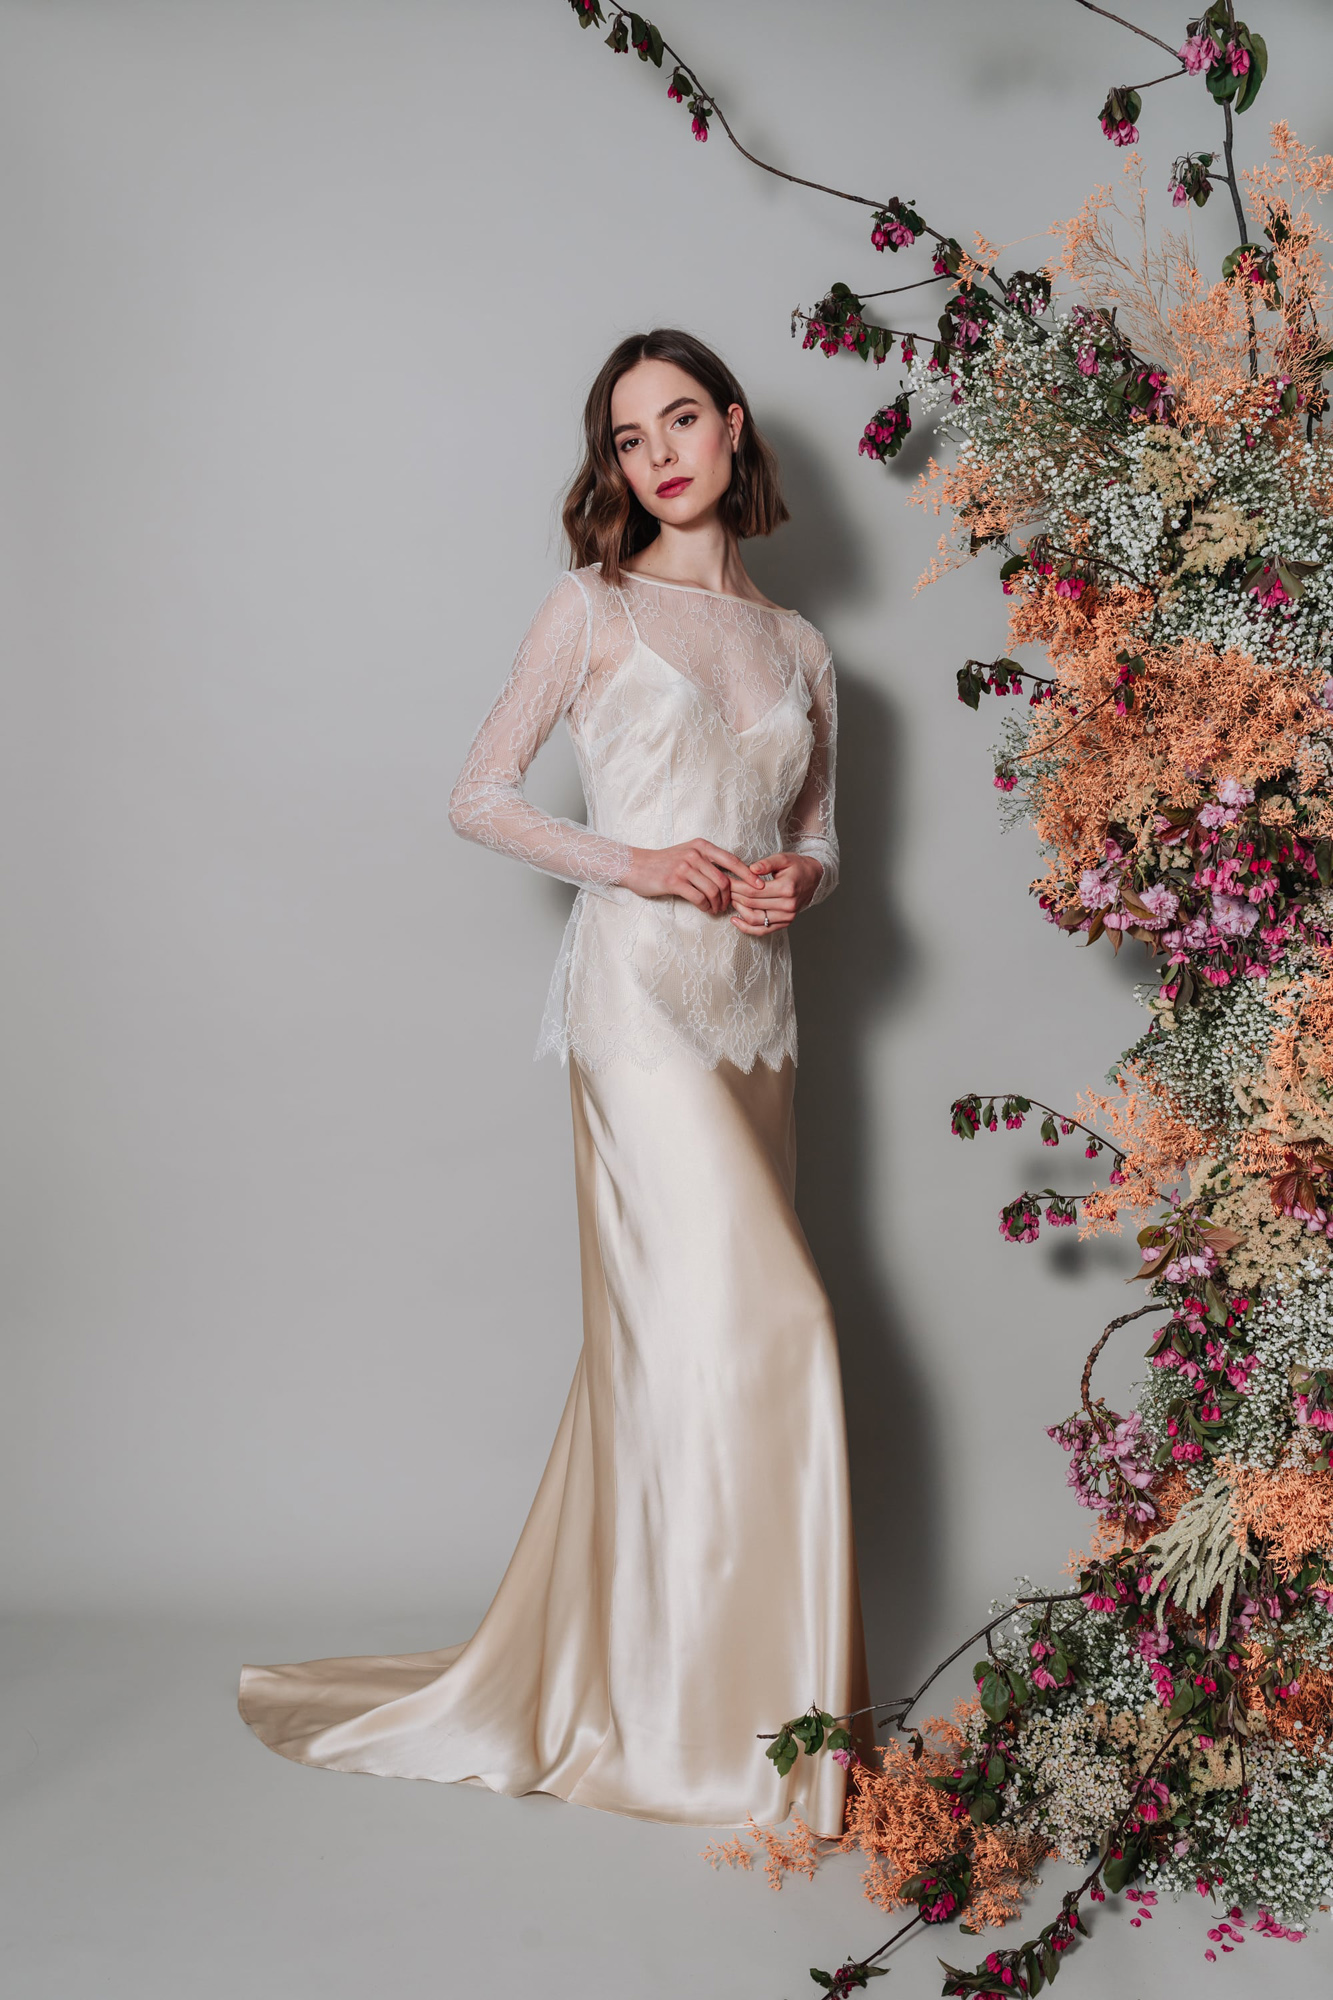 Kate-Beaumont-Sheffield-Thistle-Bridal-Separates-Two-Piece-Lace-Silk-Wedding-Gown-7.jpg